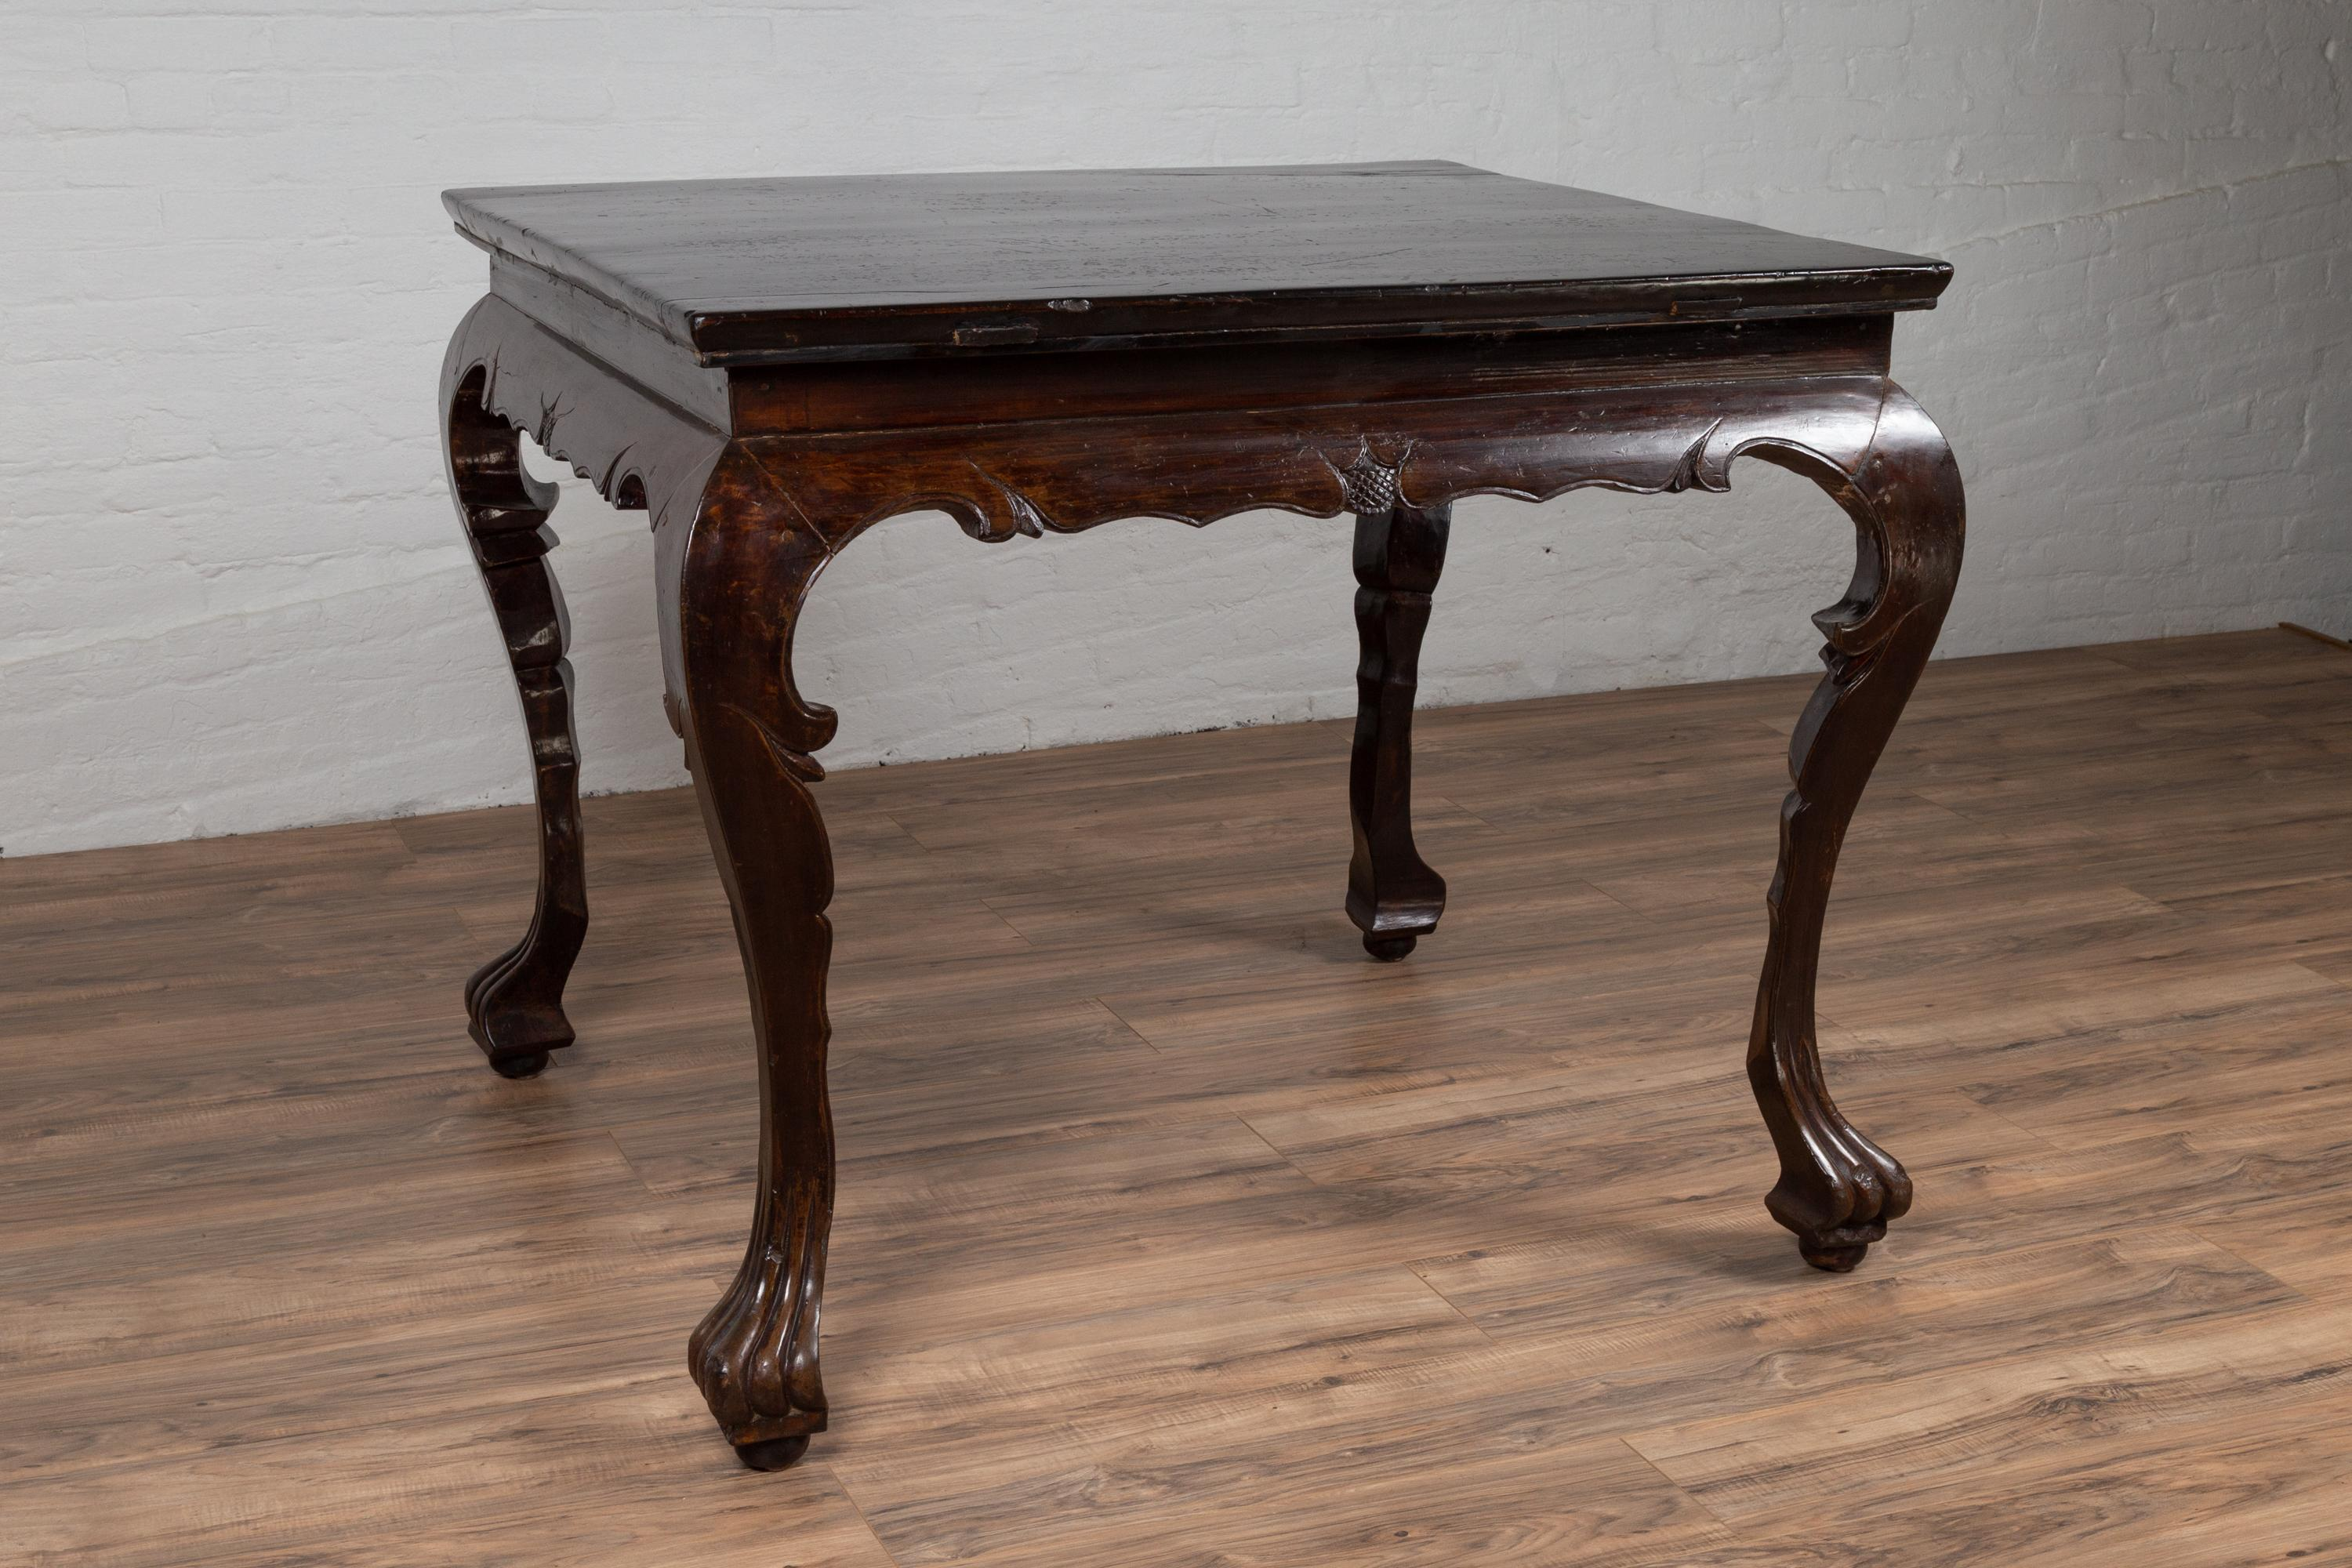 Beau Chinese Antique Center Hall Table With Black Lacquered Top And Cabriole Legs